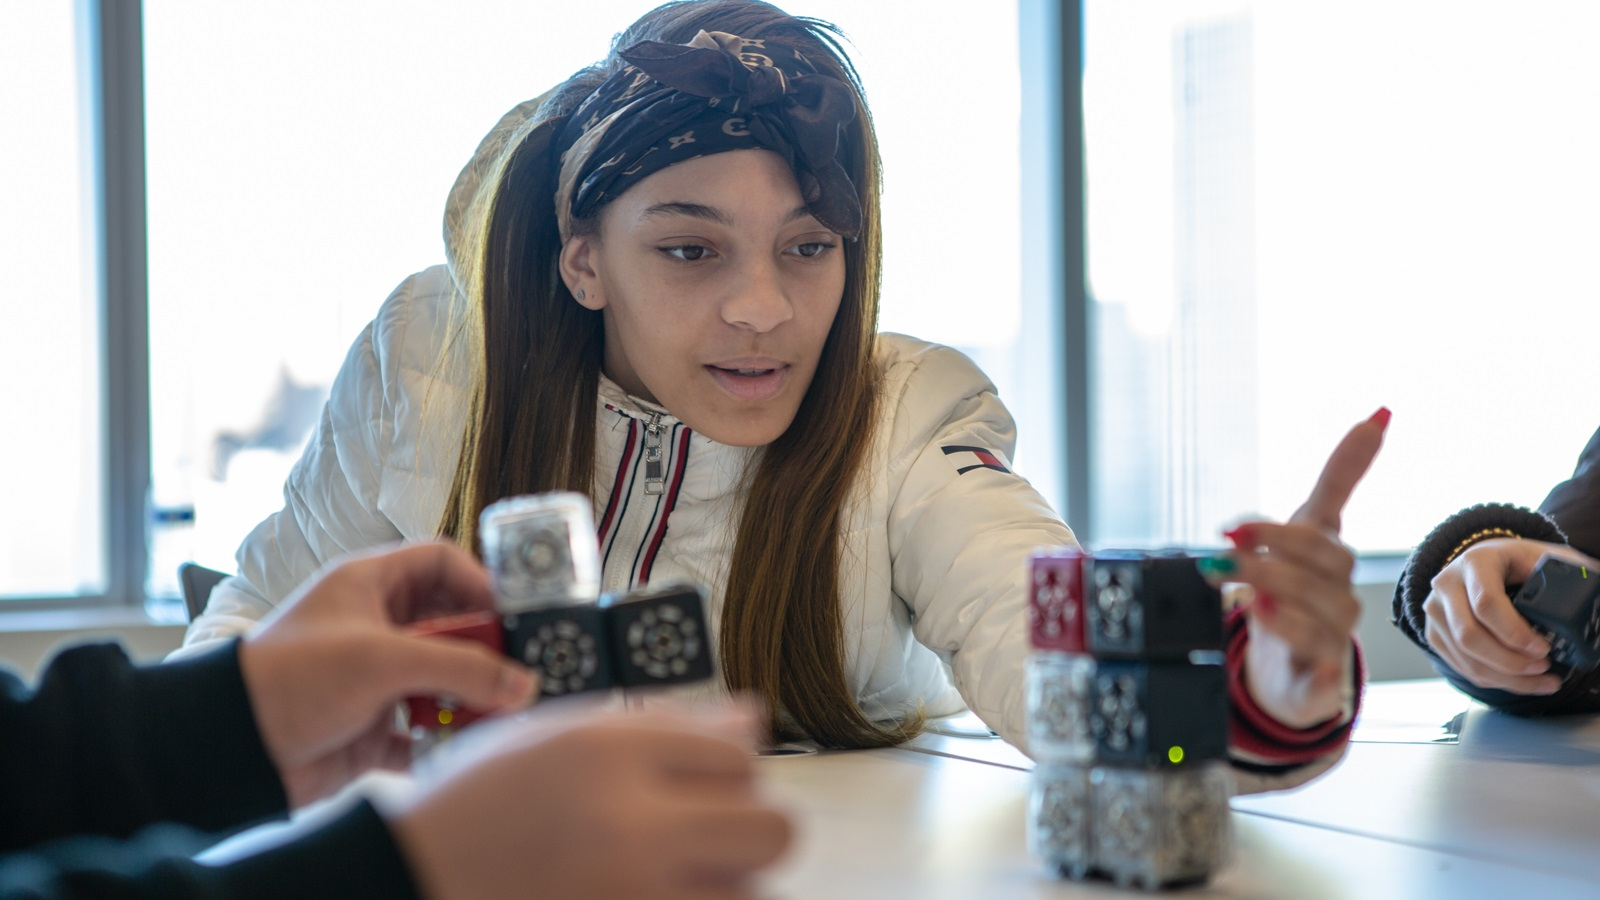 A Kenwood Academy student creaes a robot to solve a computational thinking challenge. (Image by Argonne National Laboratory.)